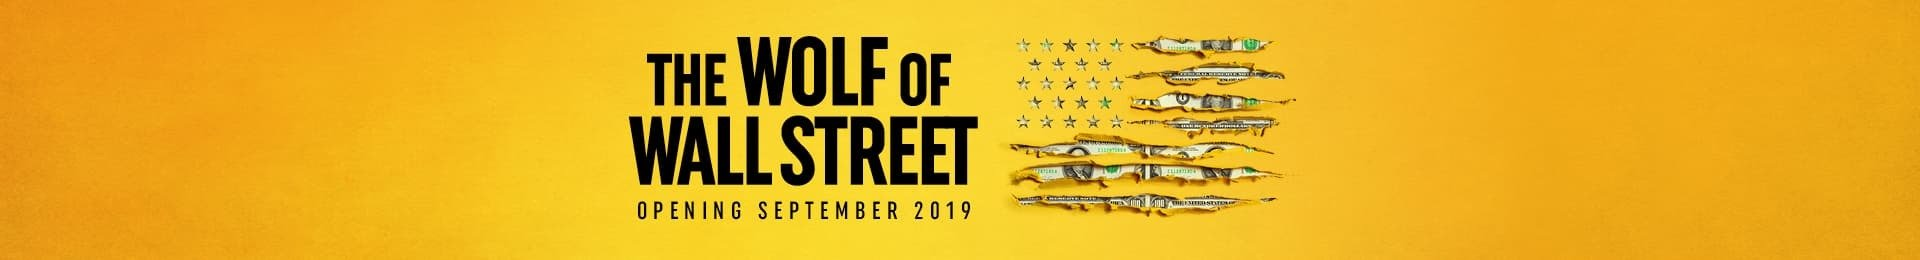 The Wolf of Wall Street banner image